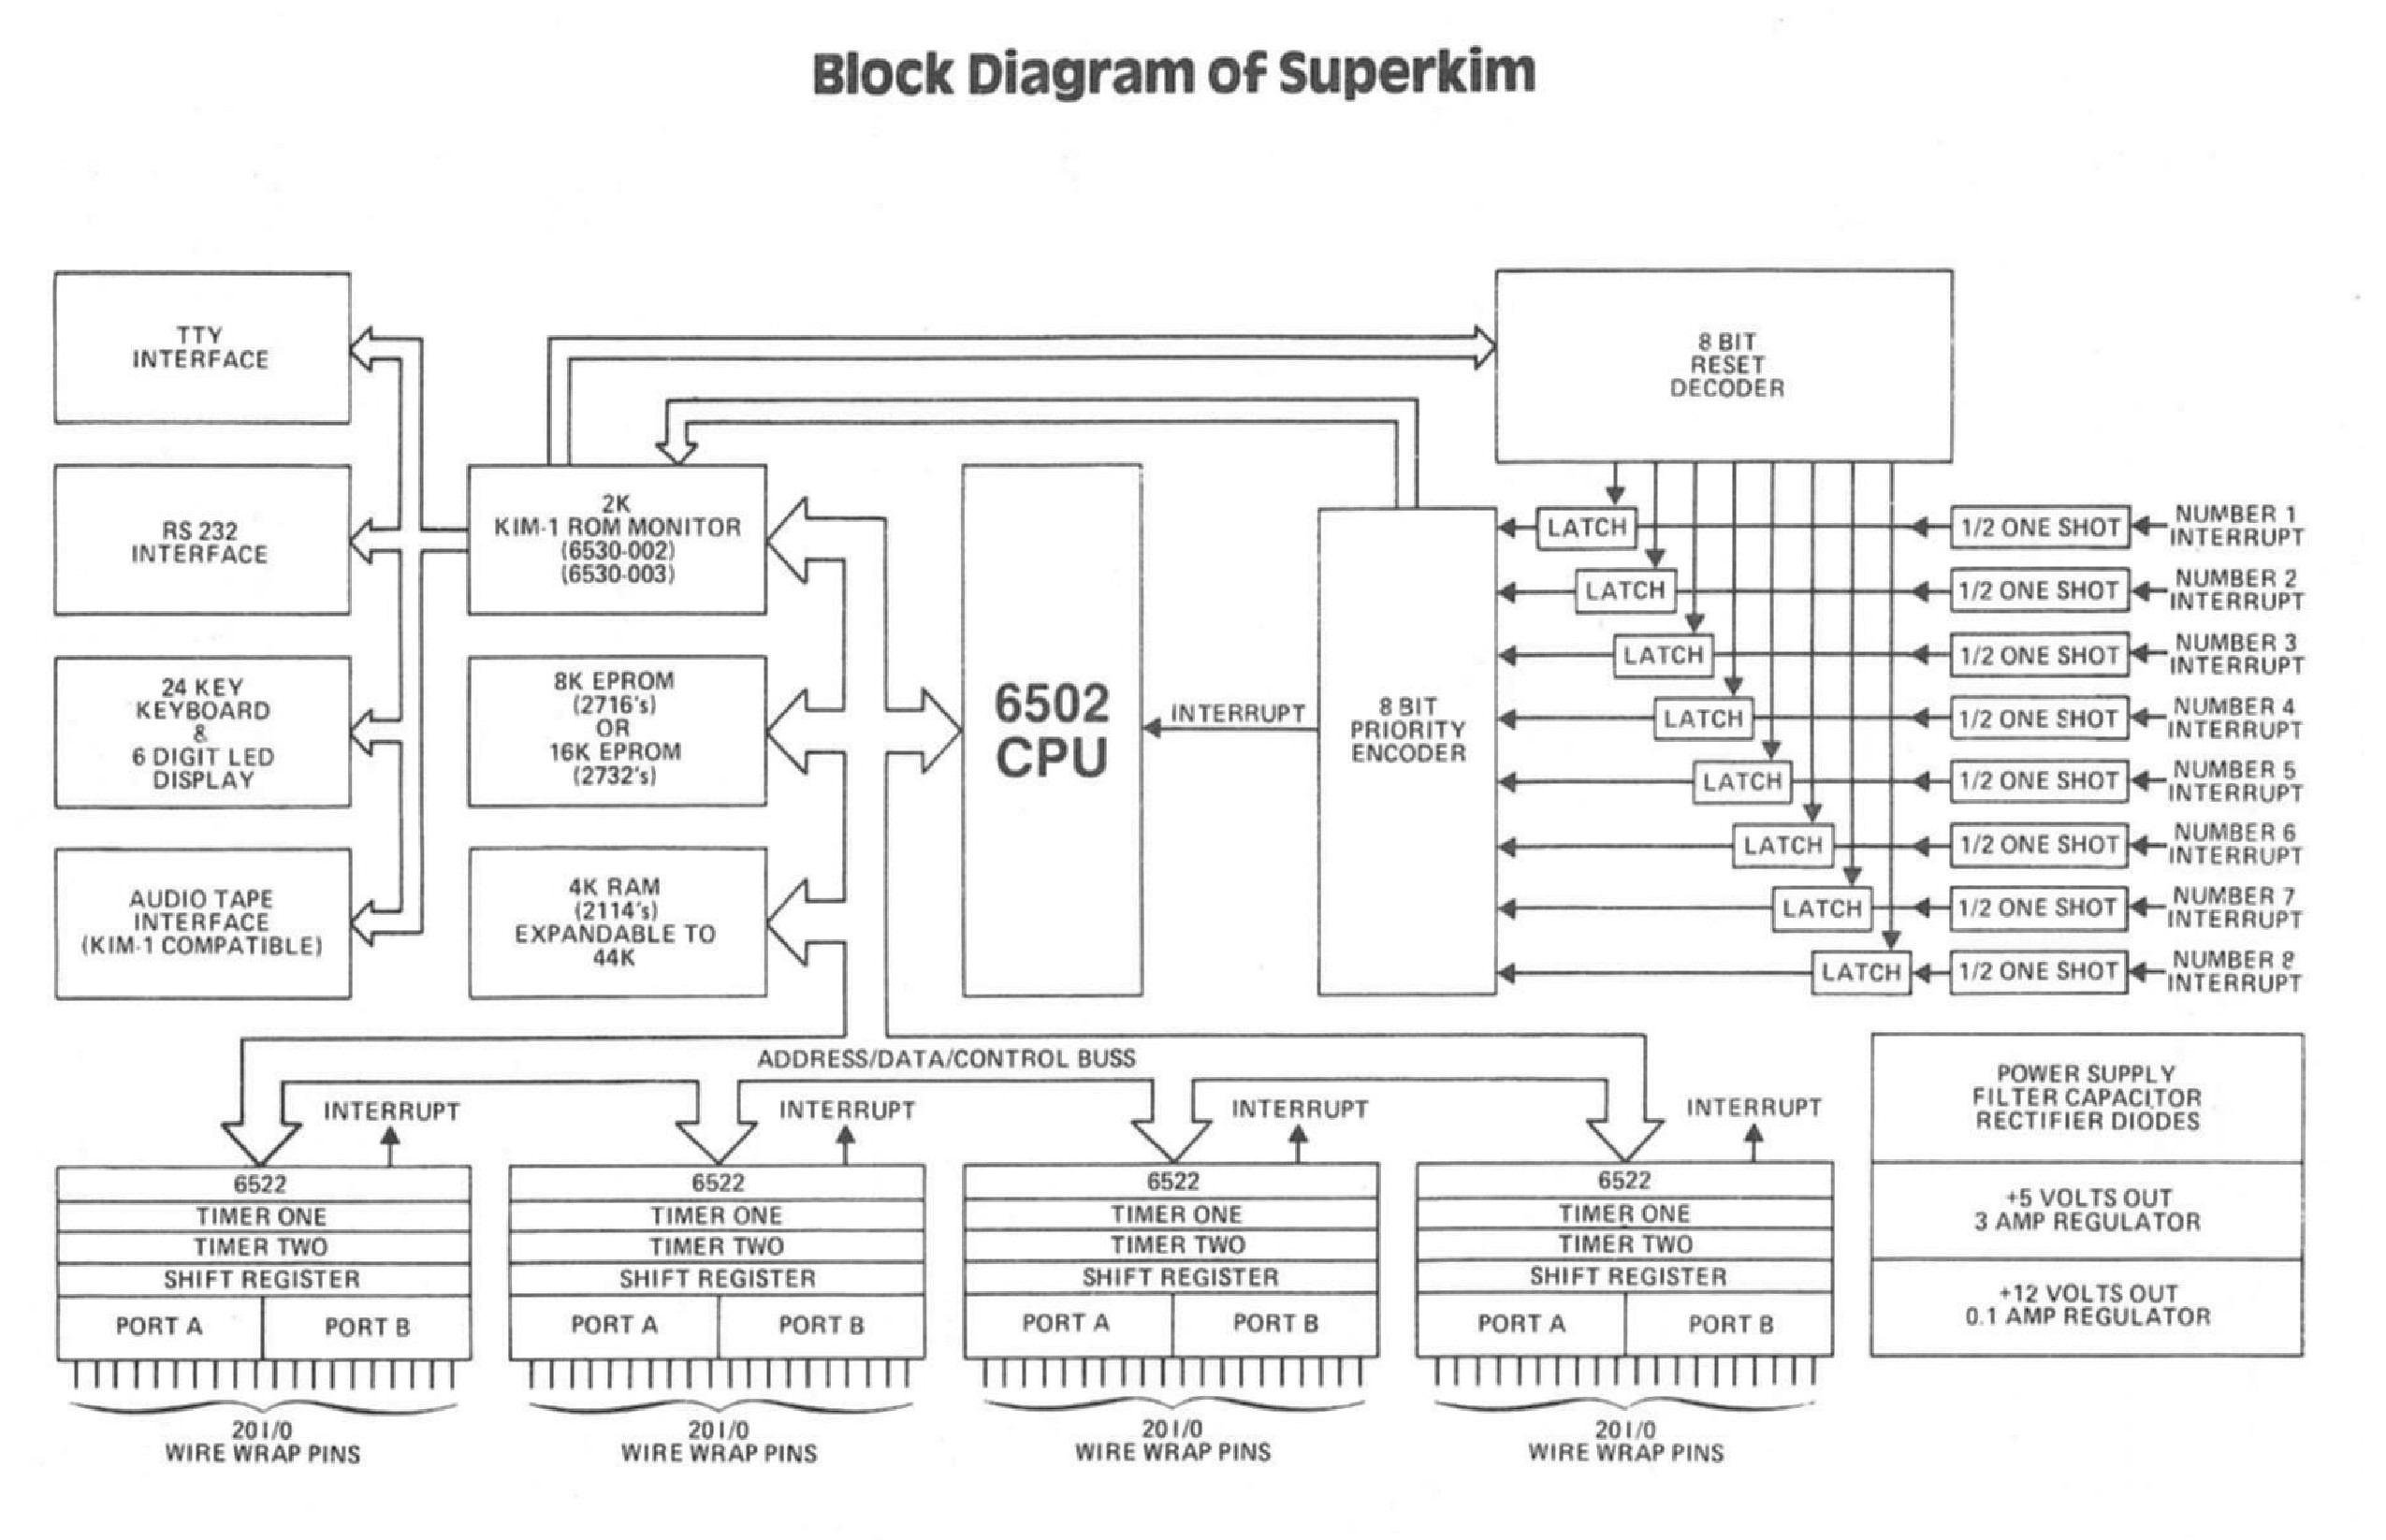 6502 Retro Computing 7 Segment Block Diagram The Default Location And Relevant Kim 1 Hardware Like Seven Display Keyboard Audio Cassette Interface Tty Edge Connector